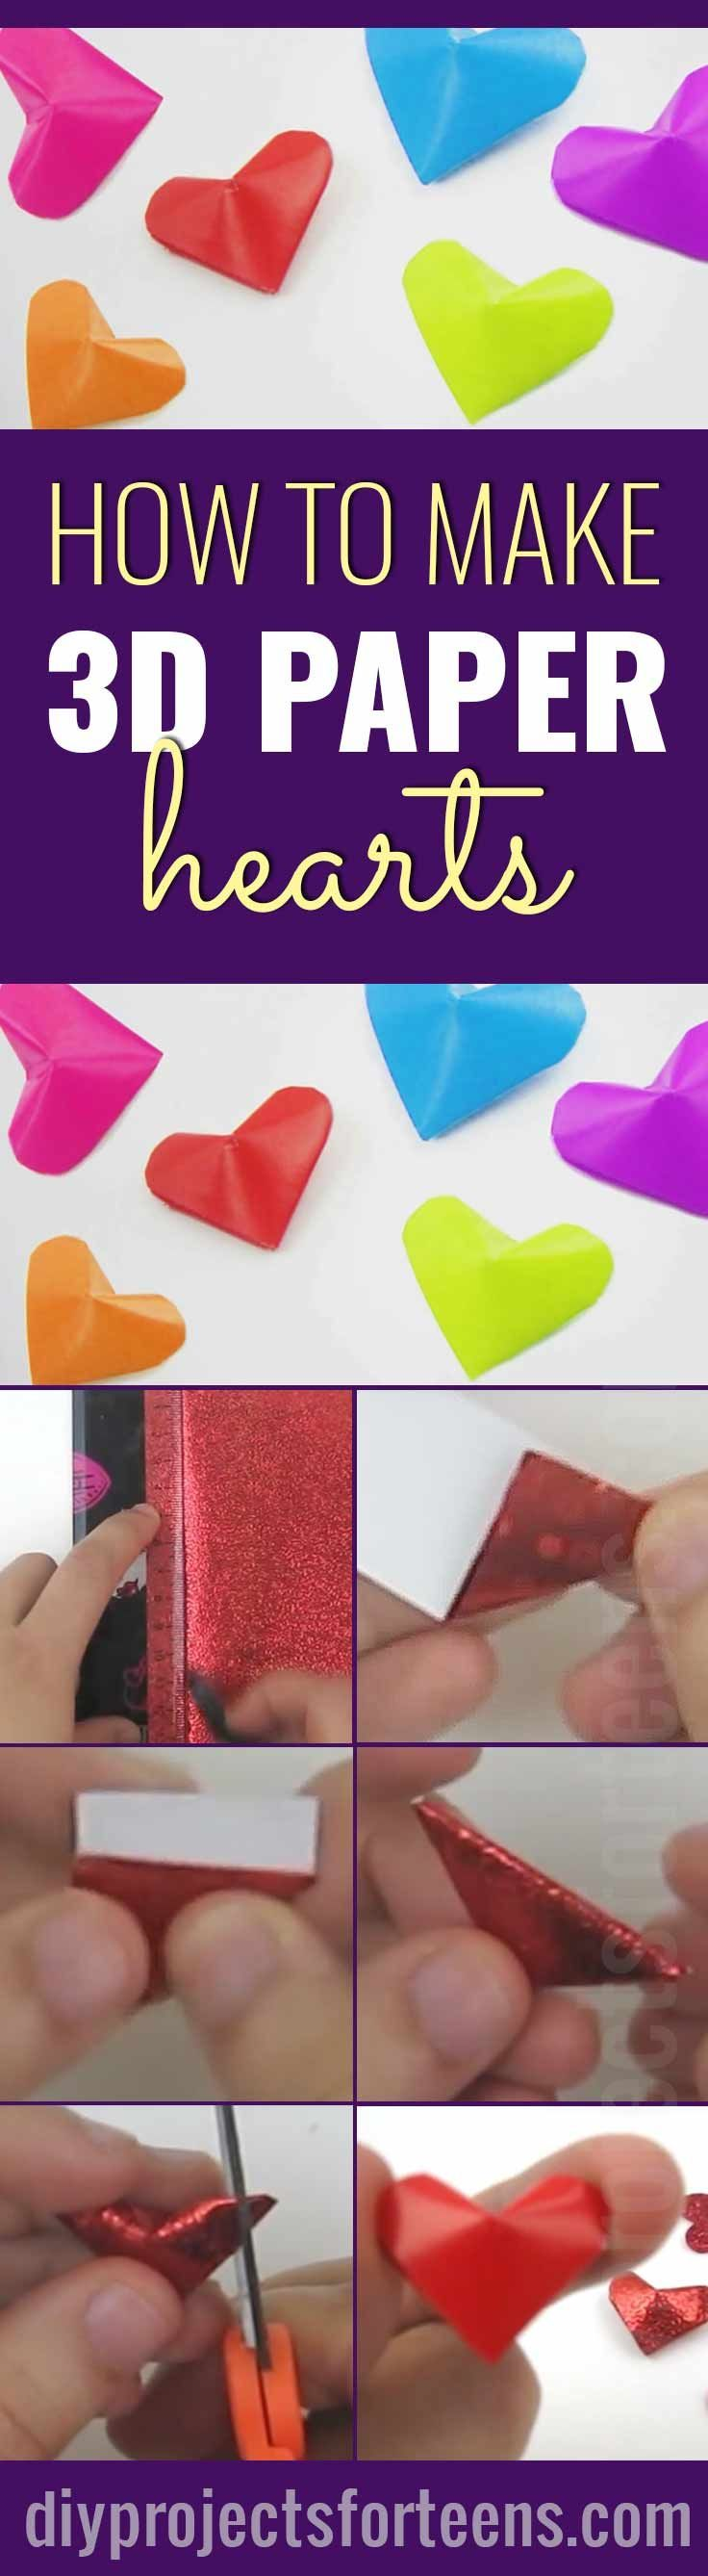 Easy Paper Crafts For Teens Tweens Kids And Even Adults To Make